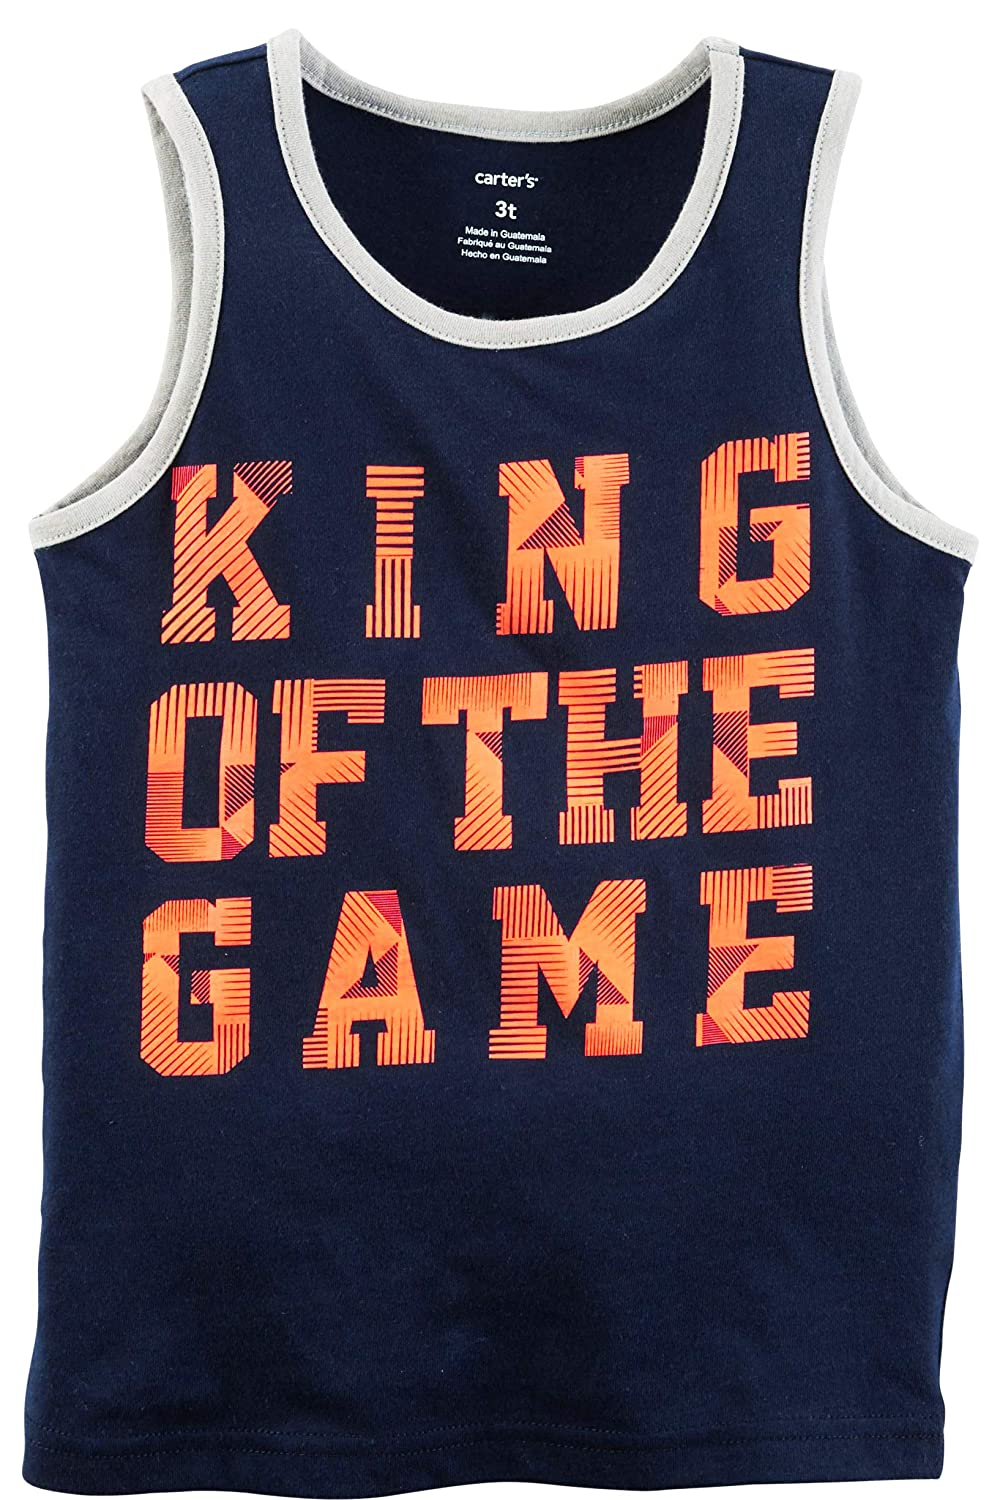 Carters Boys Navy and Orange King of The Game Tank Top 5t